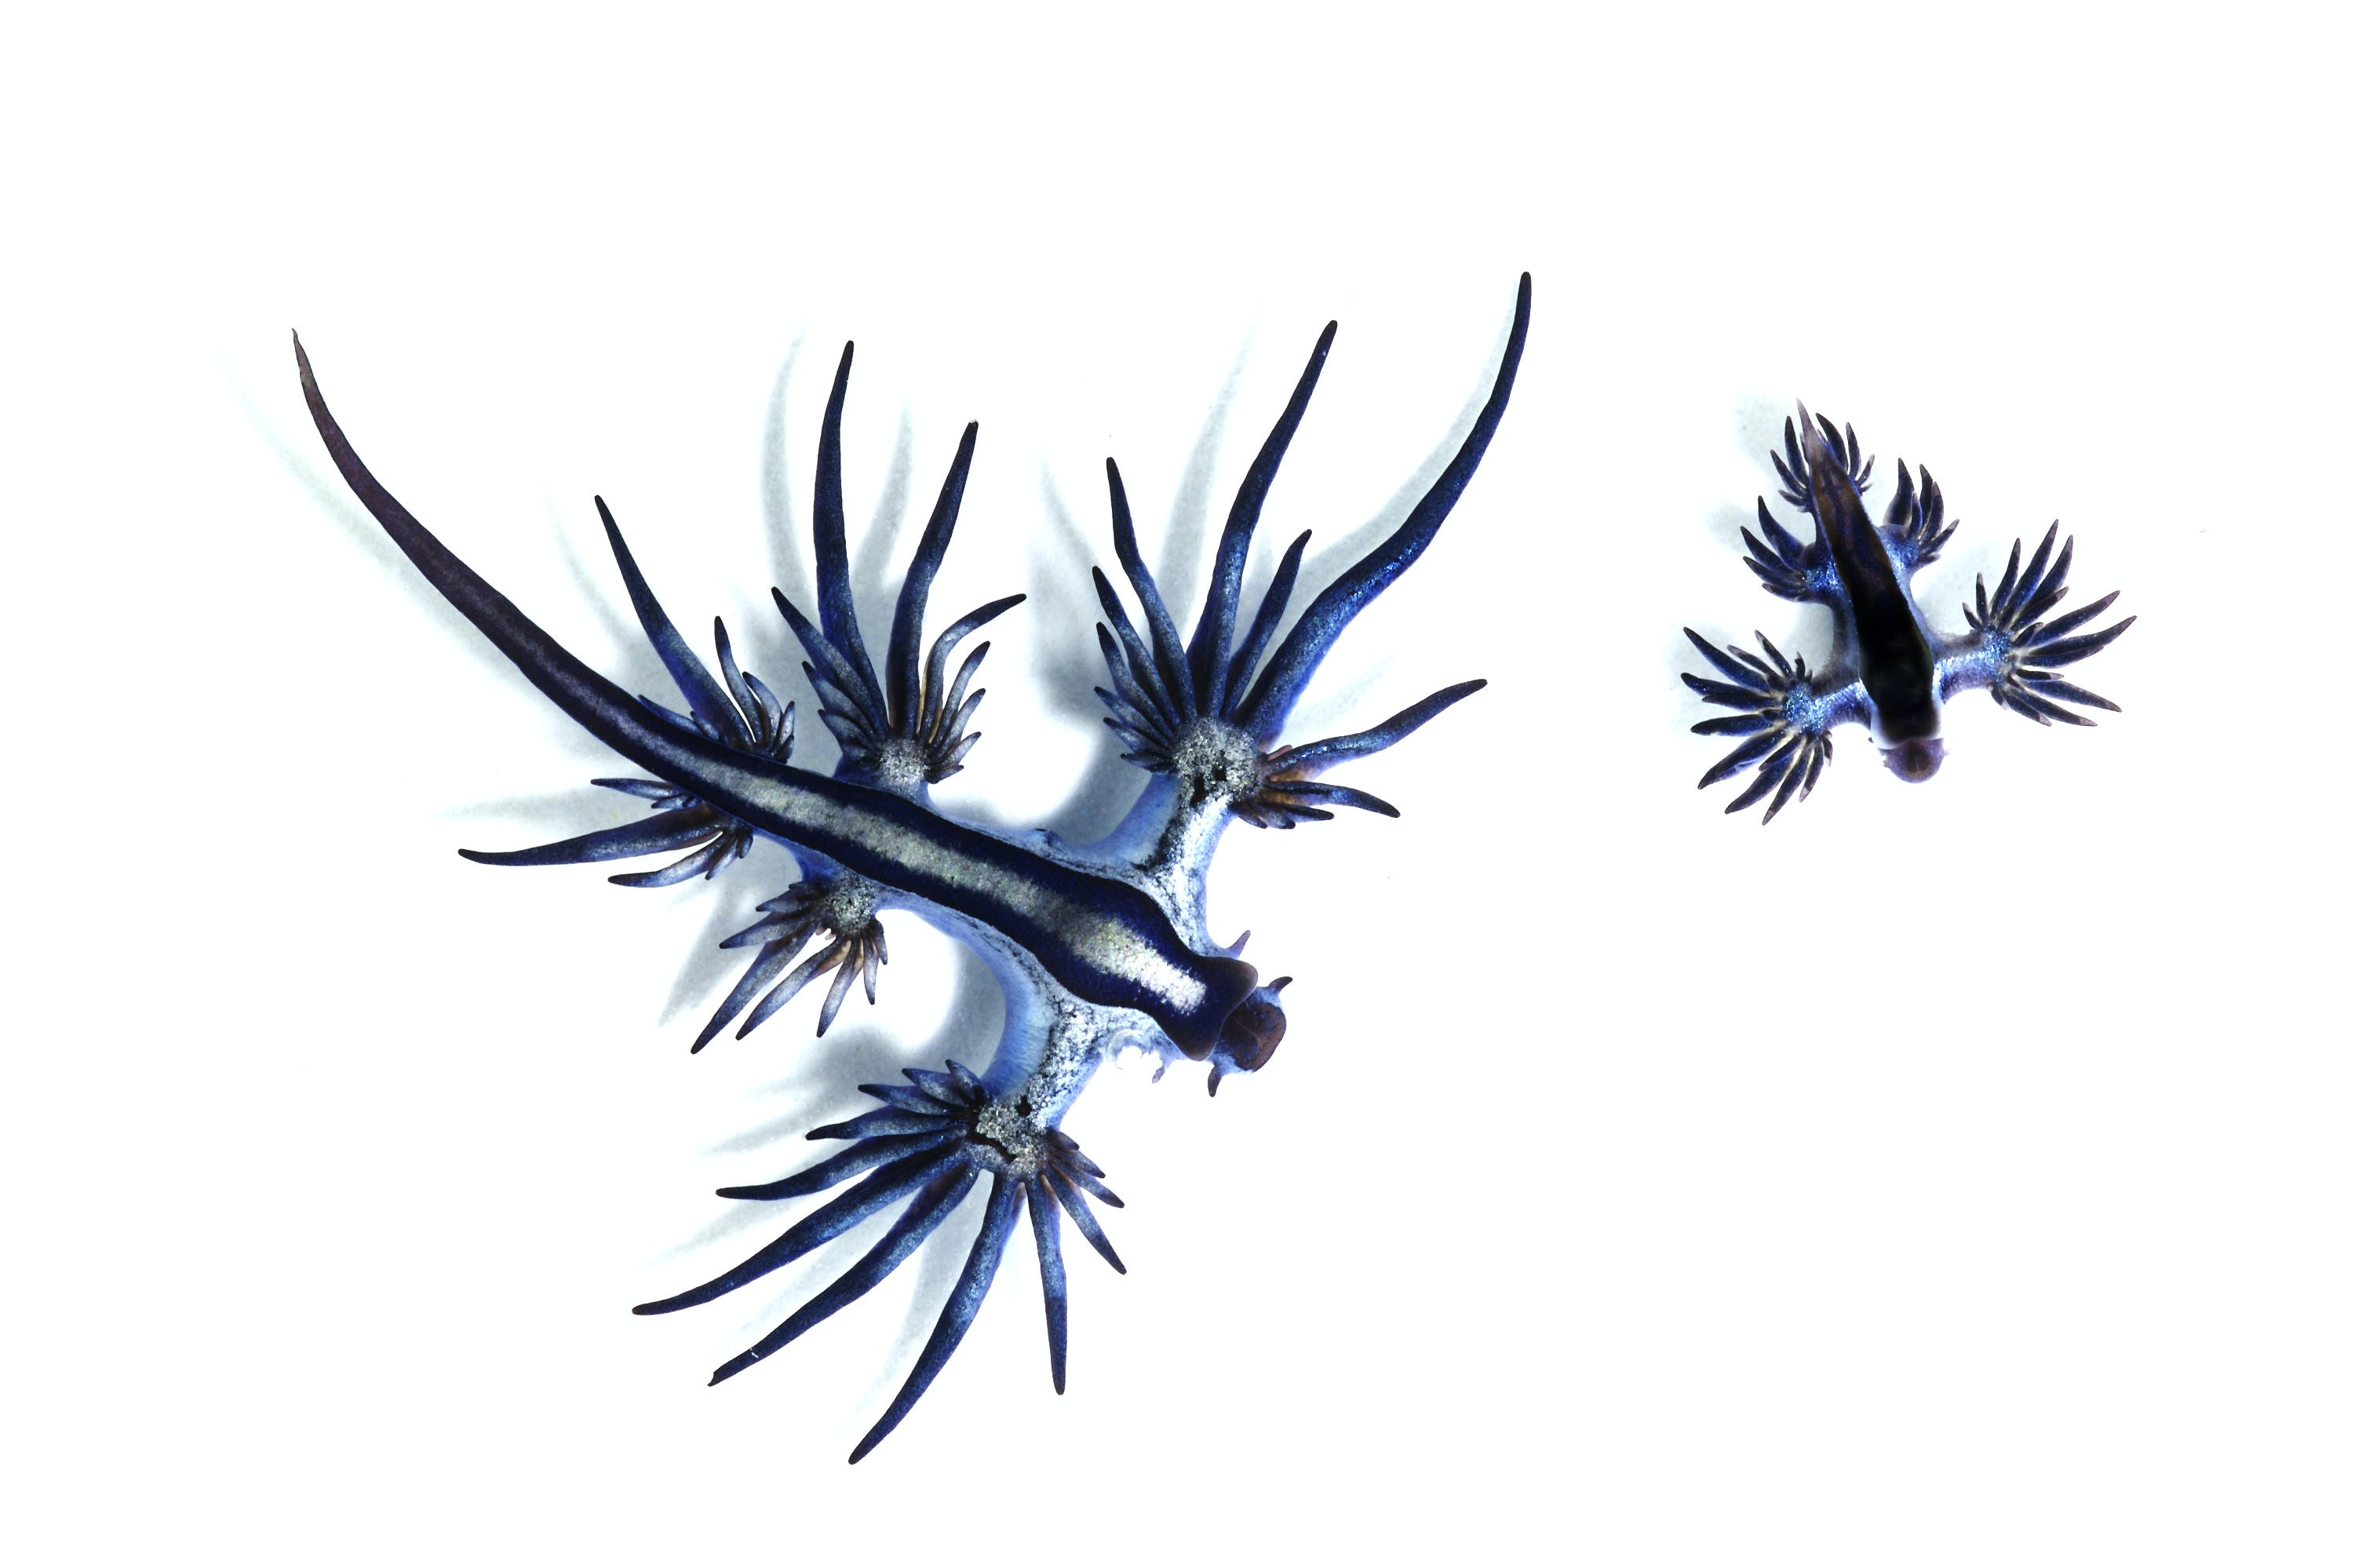 This is a Glaucus Atlanticus